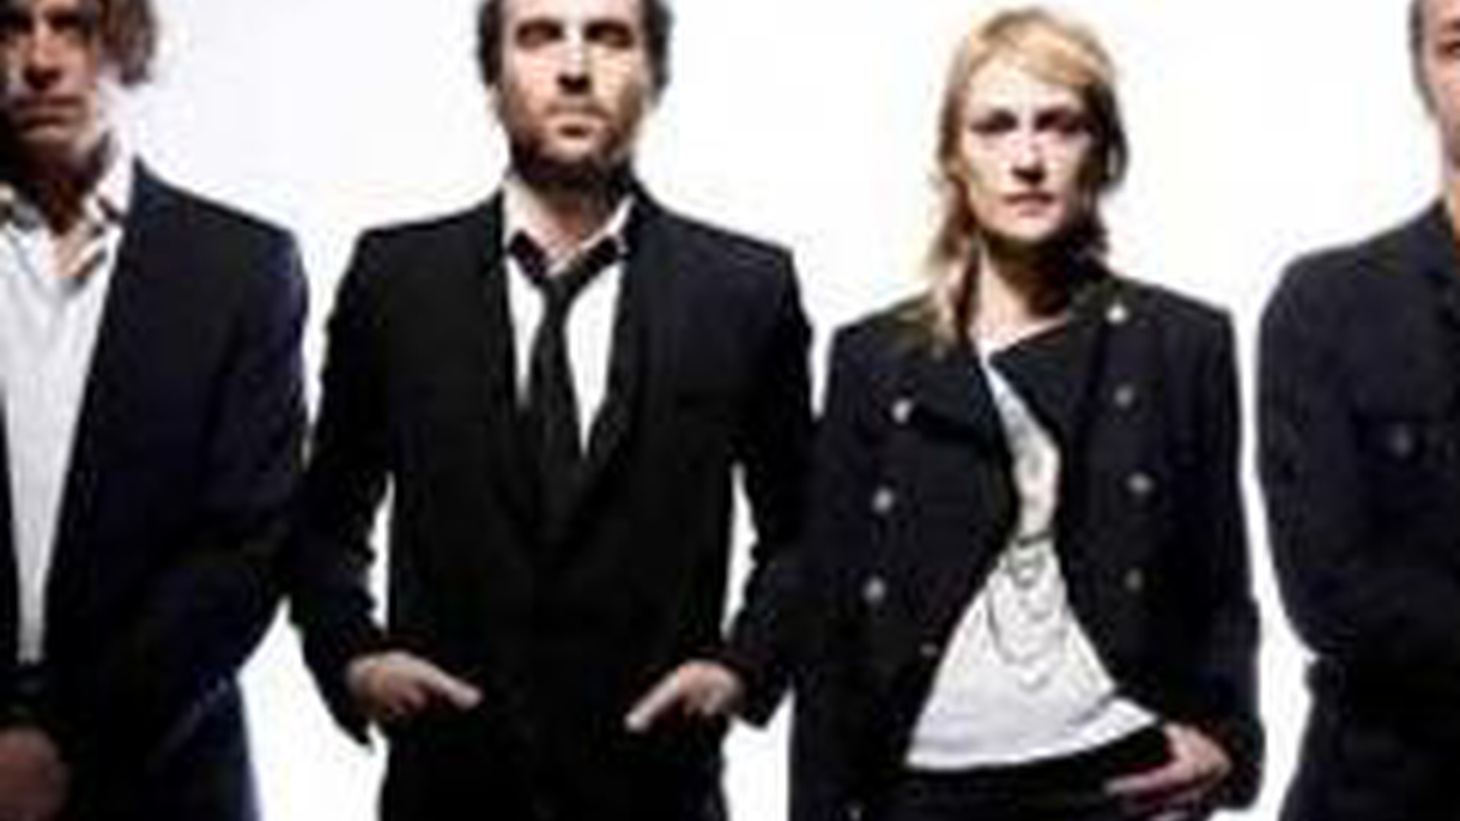 Metric expose their Fantasies for Morning Becomes Eclectic listeners at 11:15am.